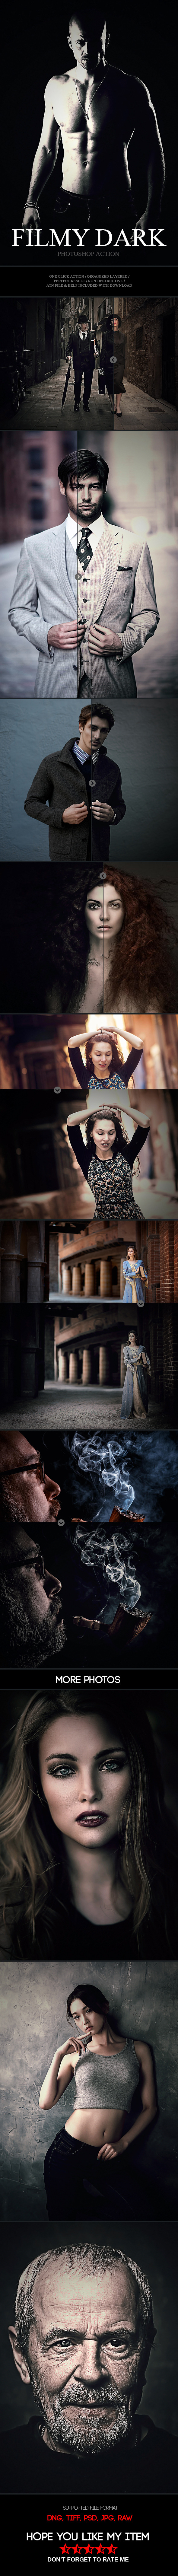 GraphicRiver Filmy Dark Photoshop Action 11908922